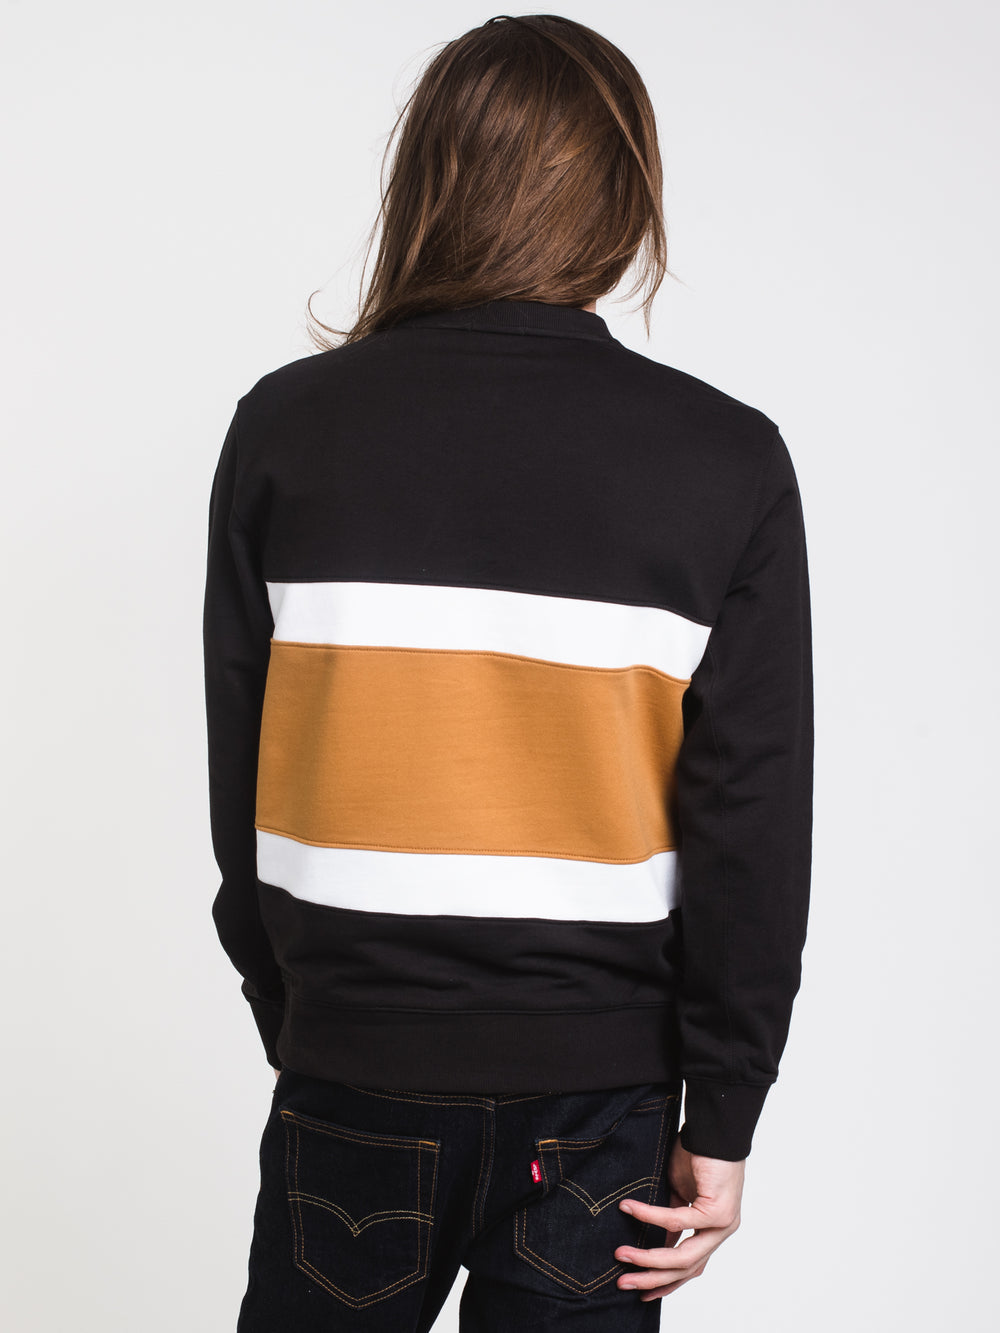 MENS CUT & SEW COLOURBLOCK CREW - BLACK